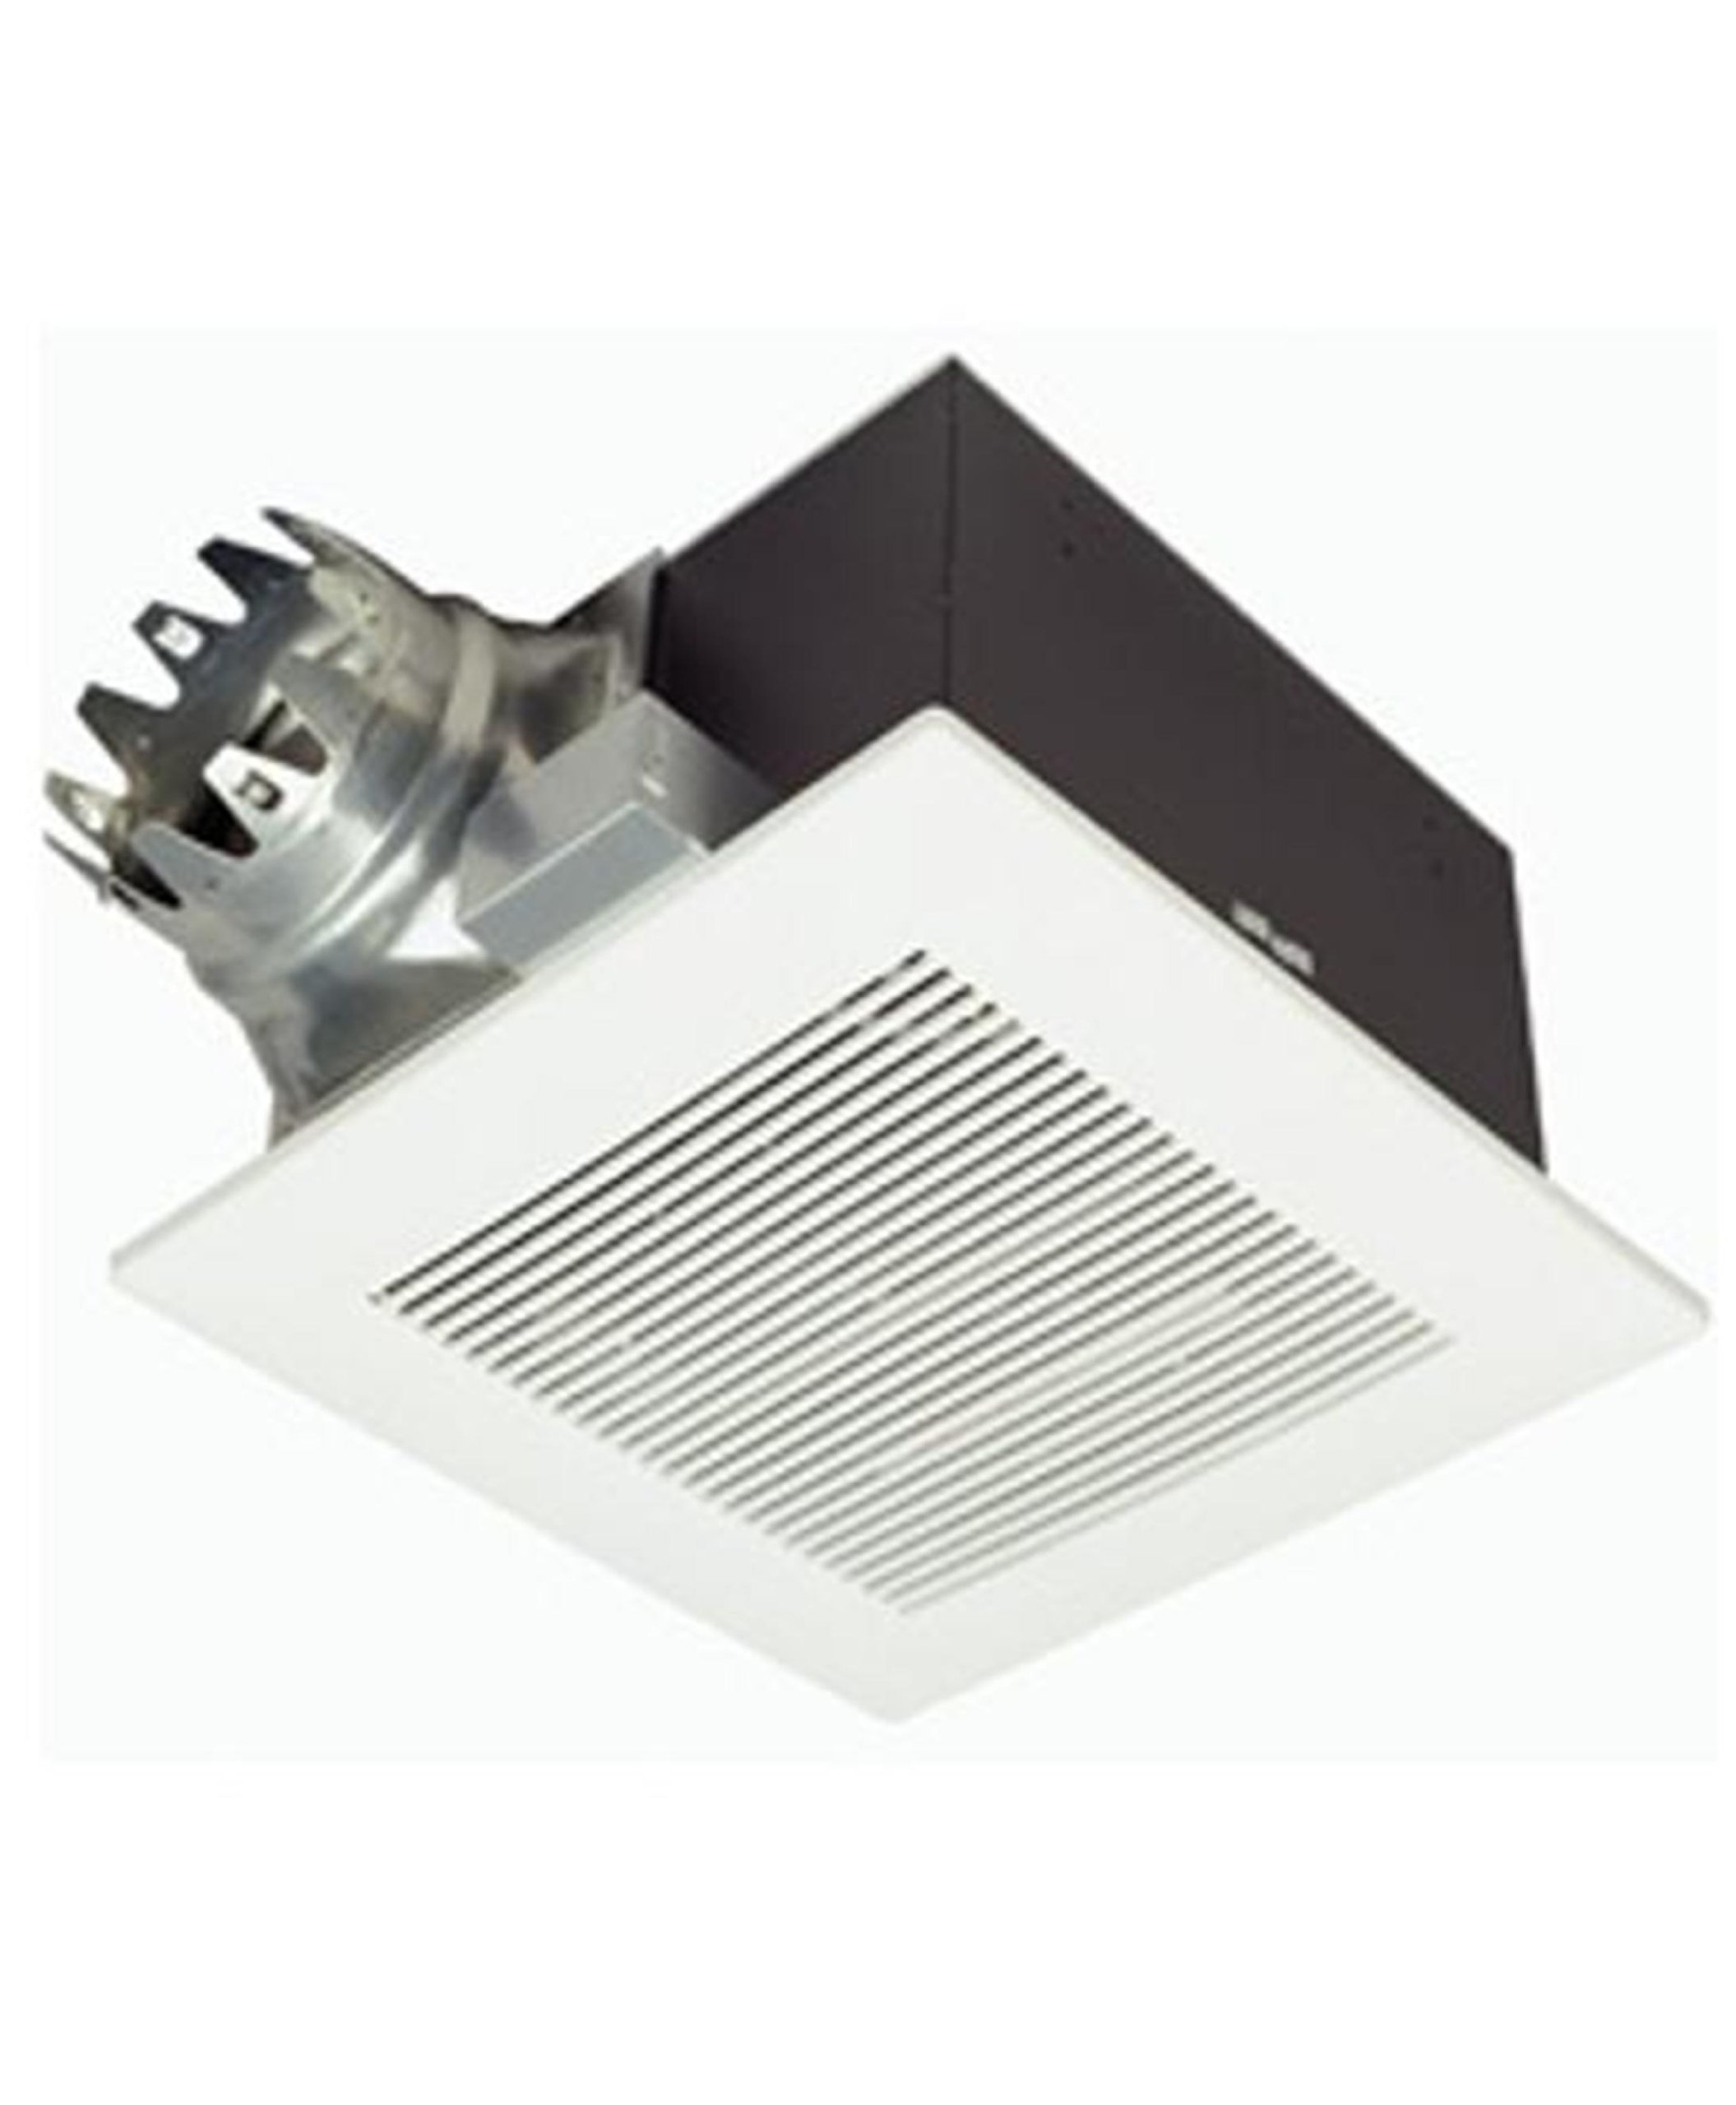 Panasonic FV-20VQ3 WhisperCeiling 190 CFM Ceiling Mounted Fan by Panasonic